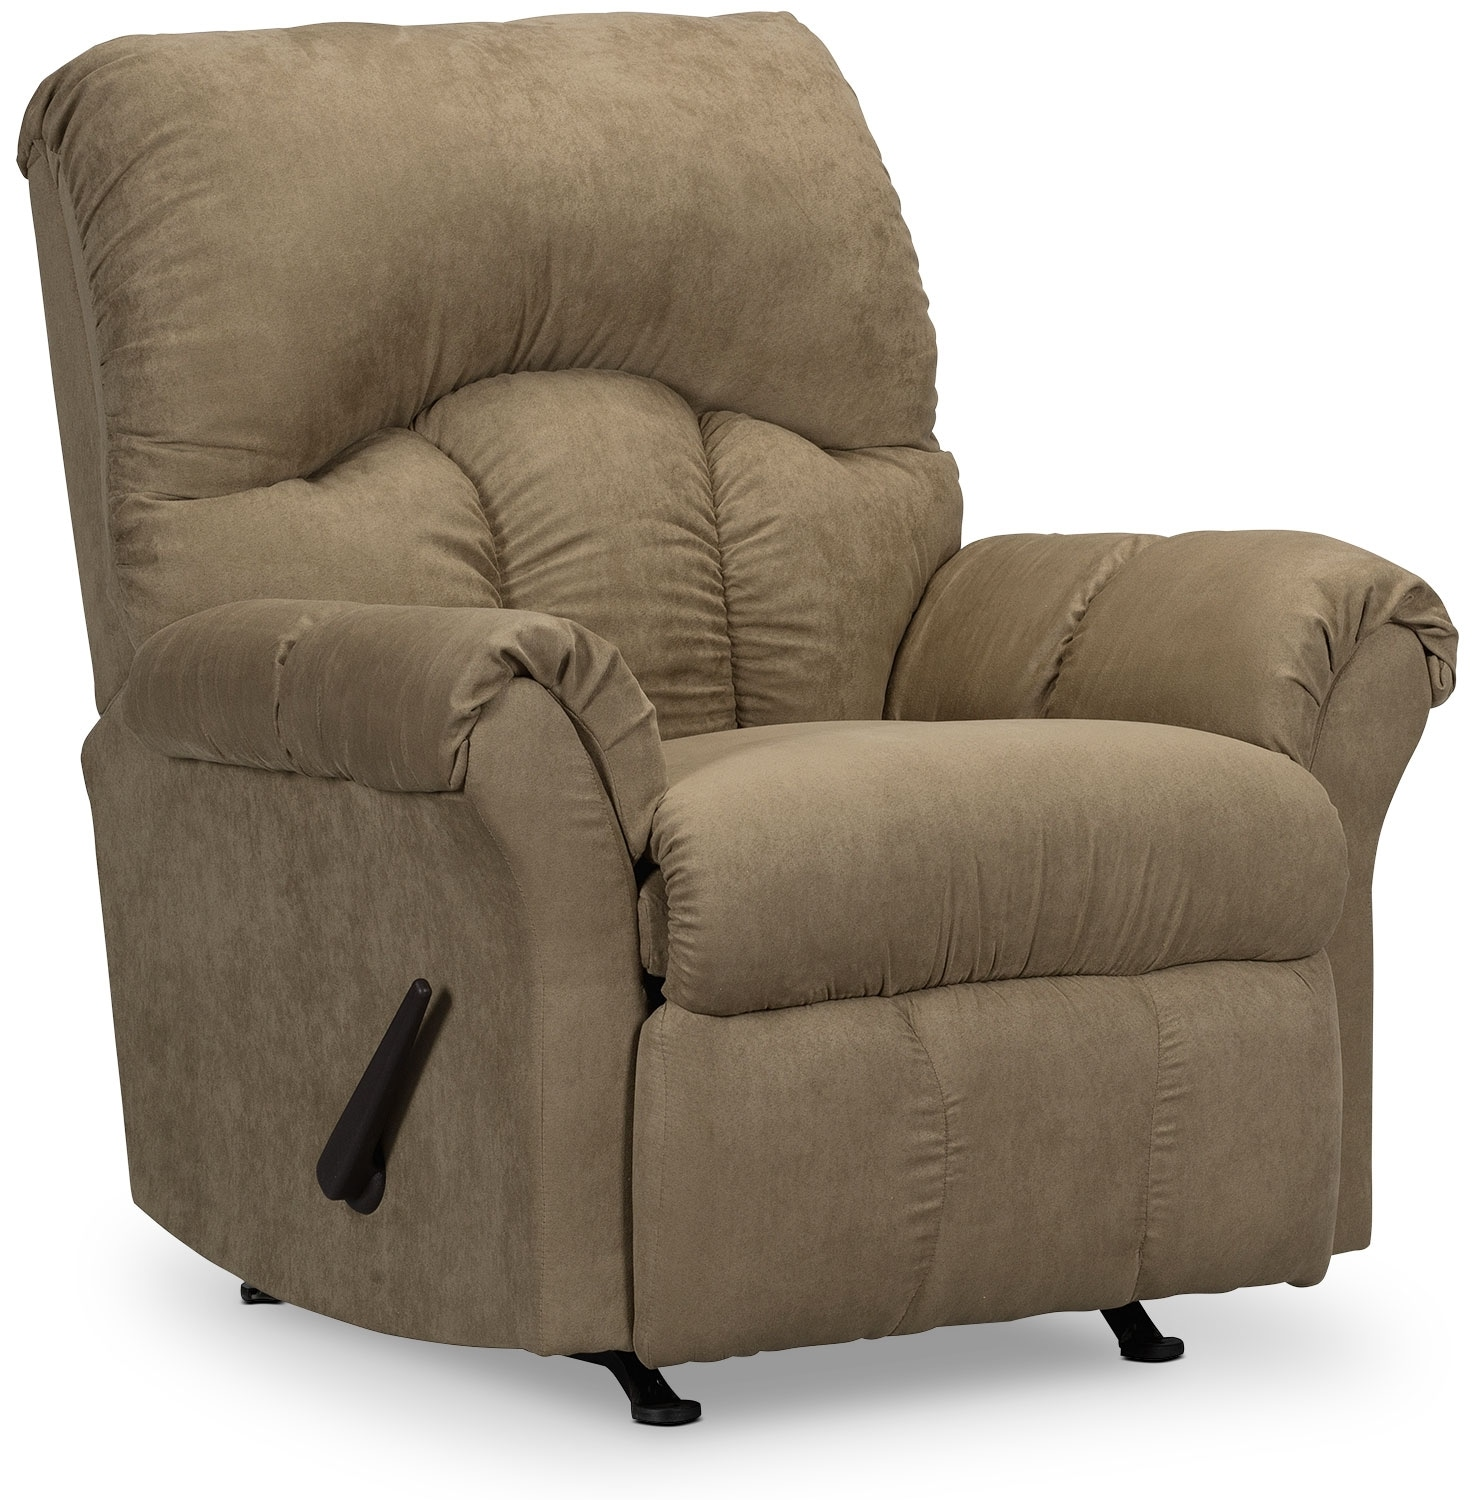 Designed2B Recliner 6734 Microsuede Rocking Chair - Mocha